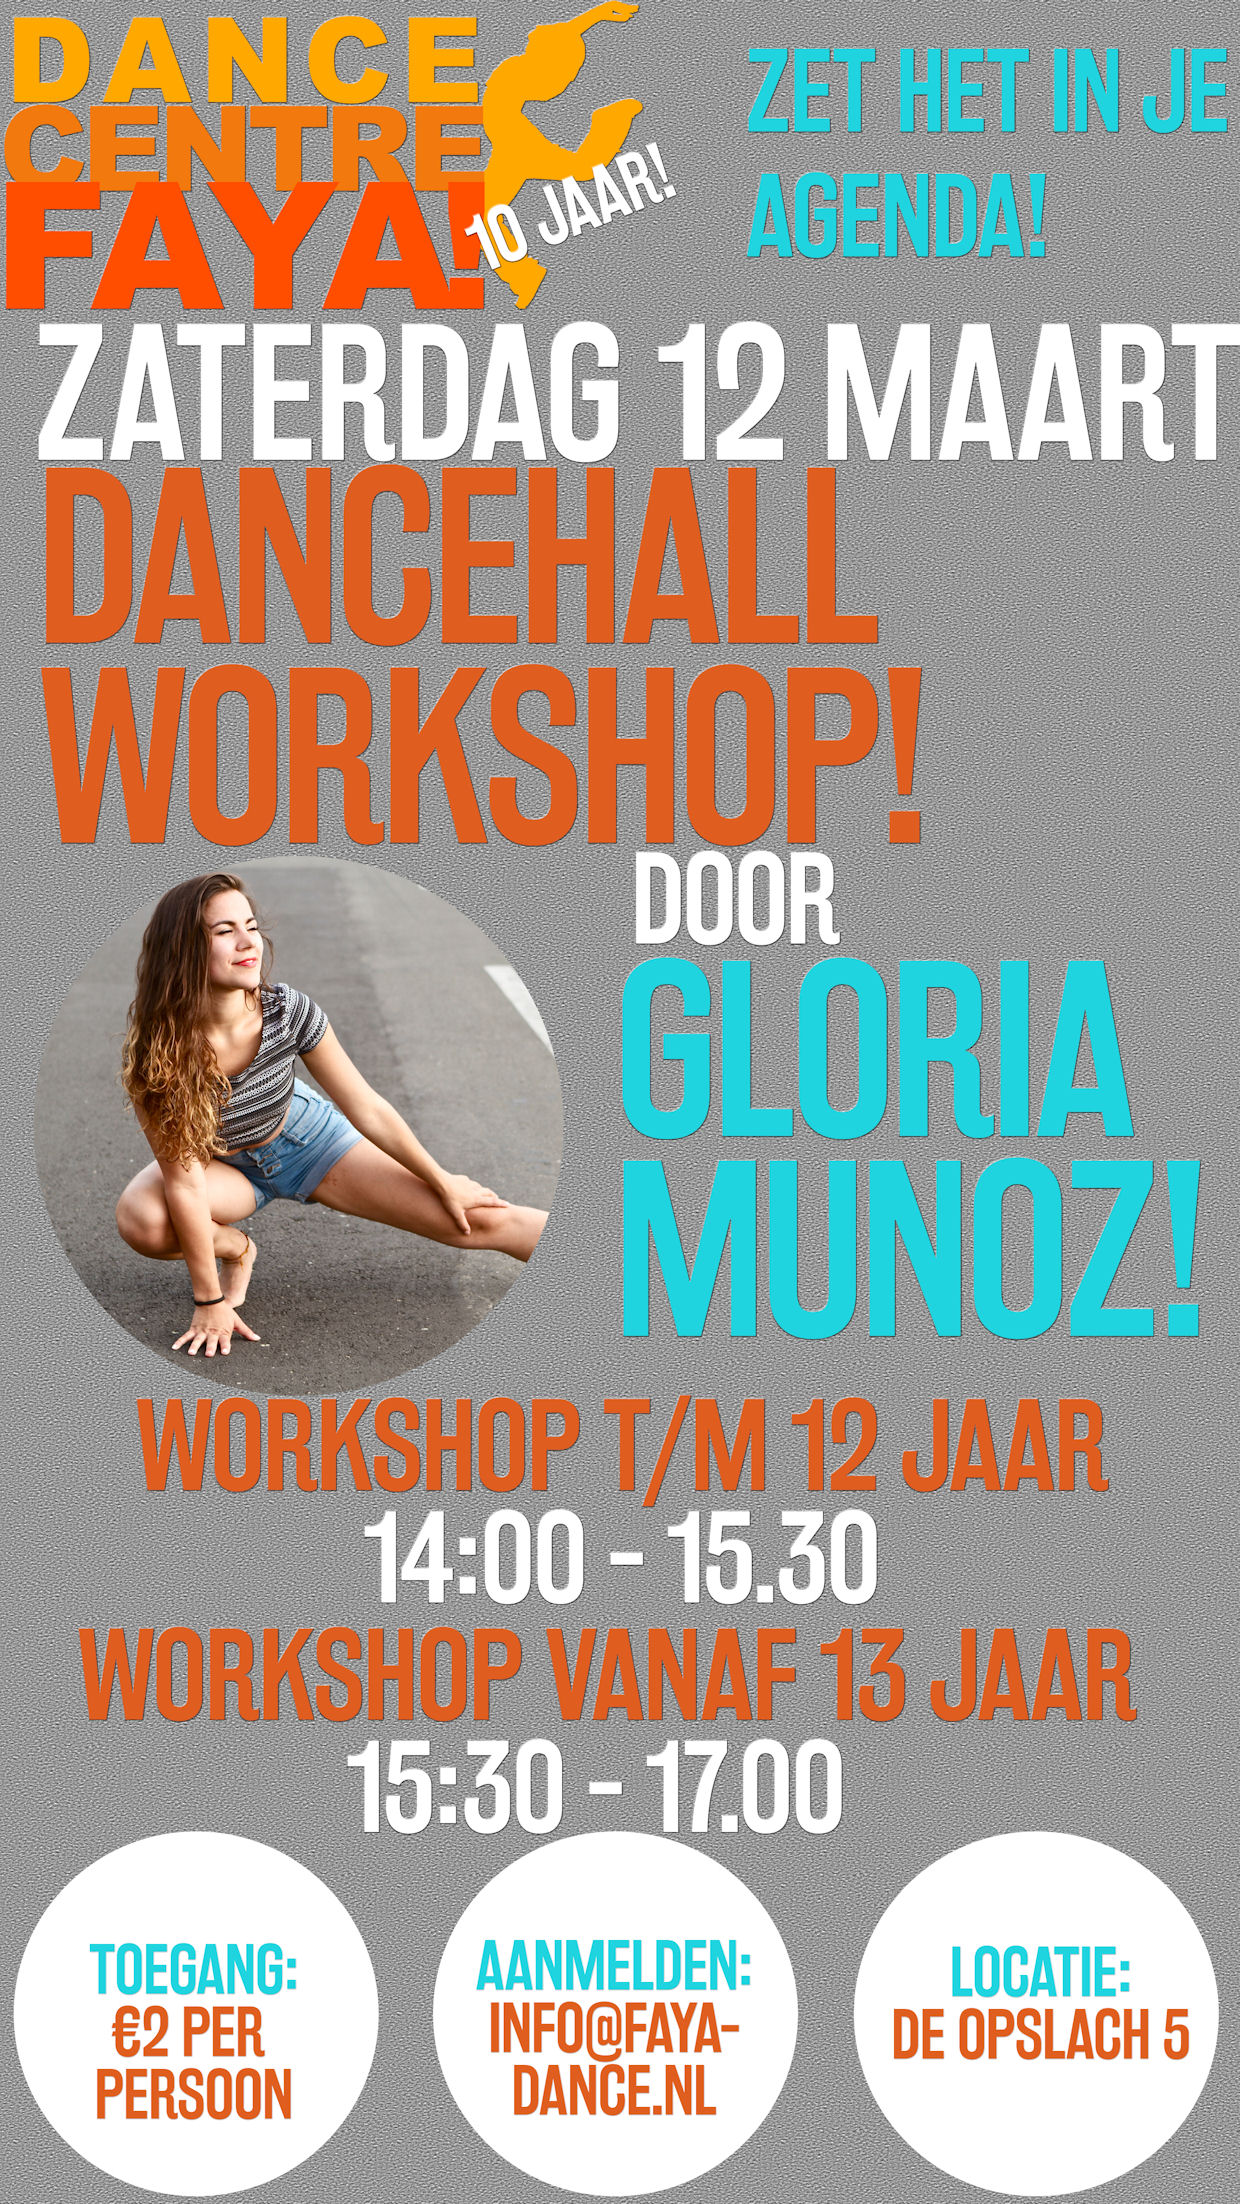 kopieDANCE HALL WORKSHOP 2016